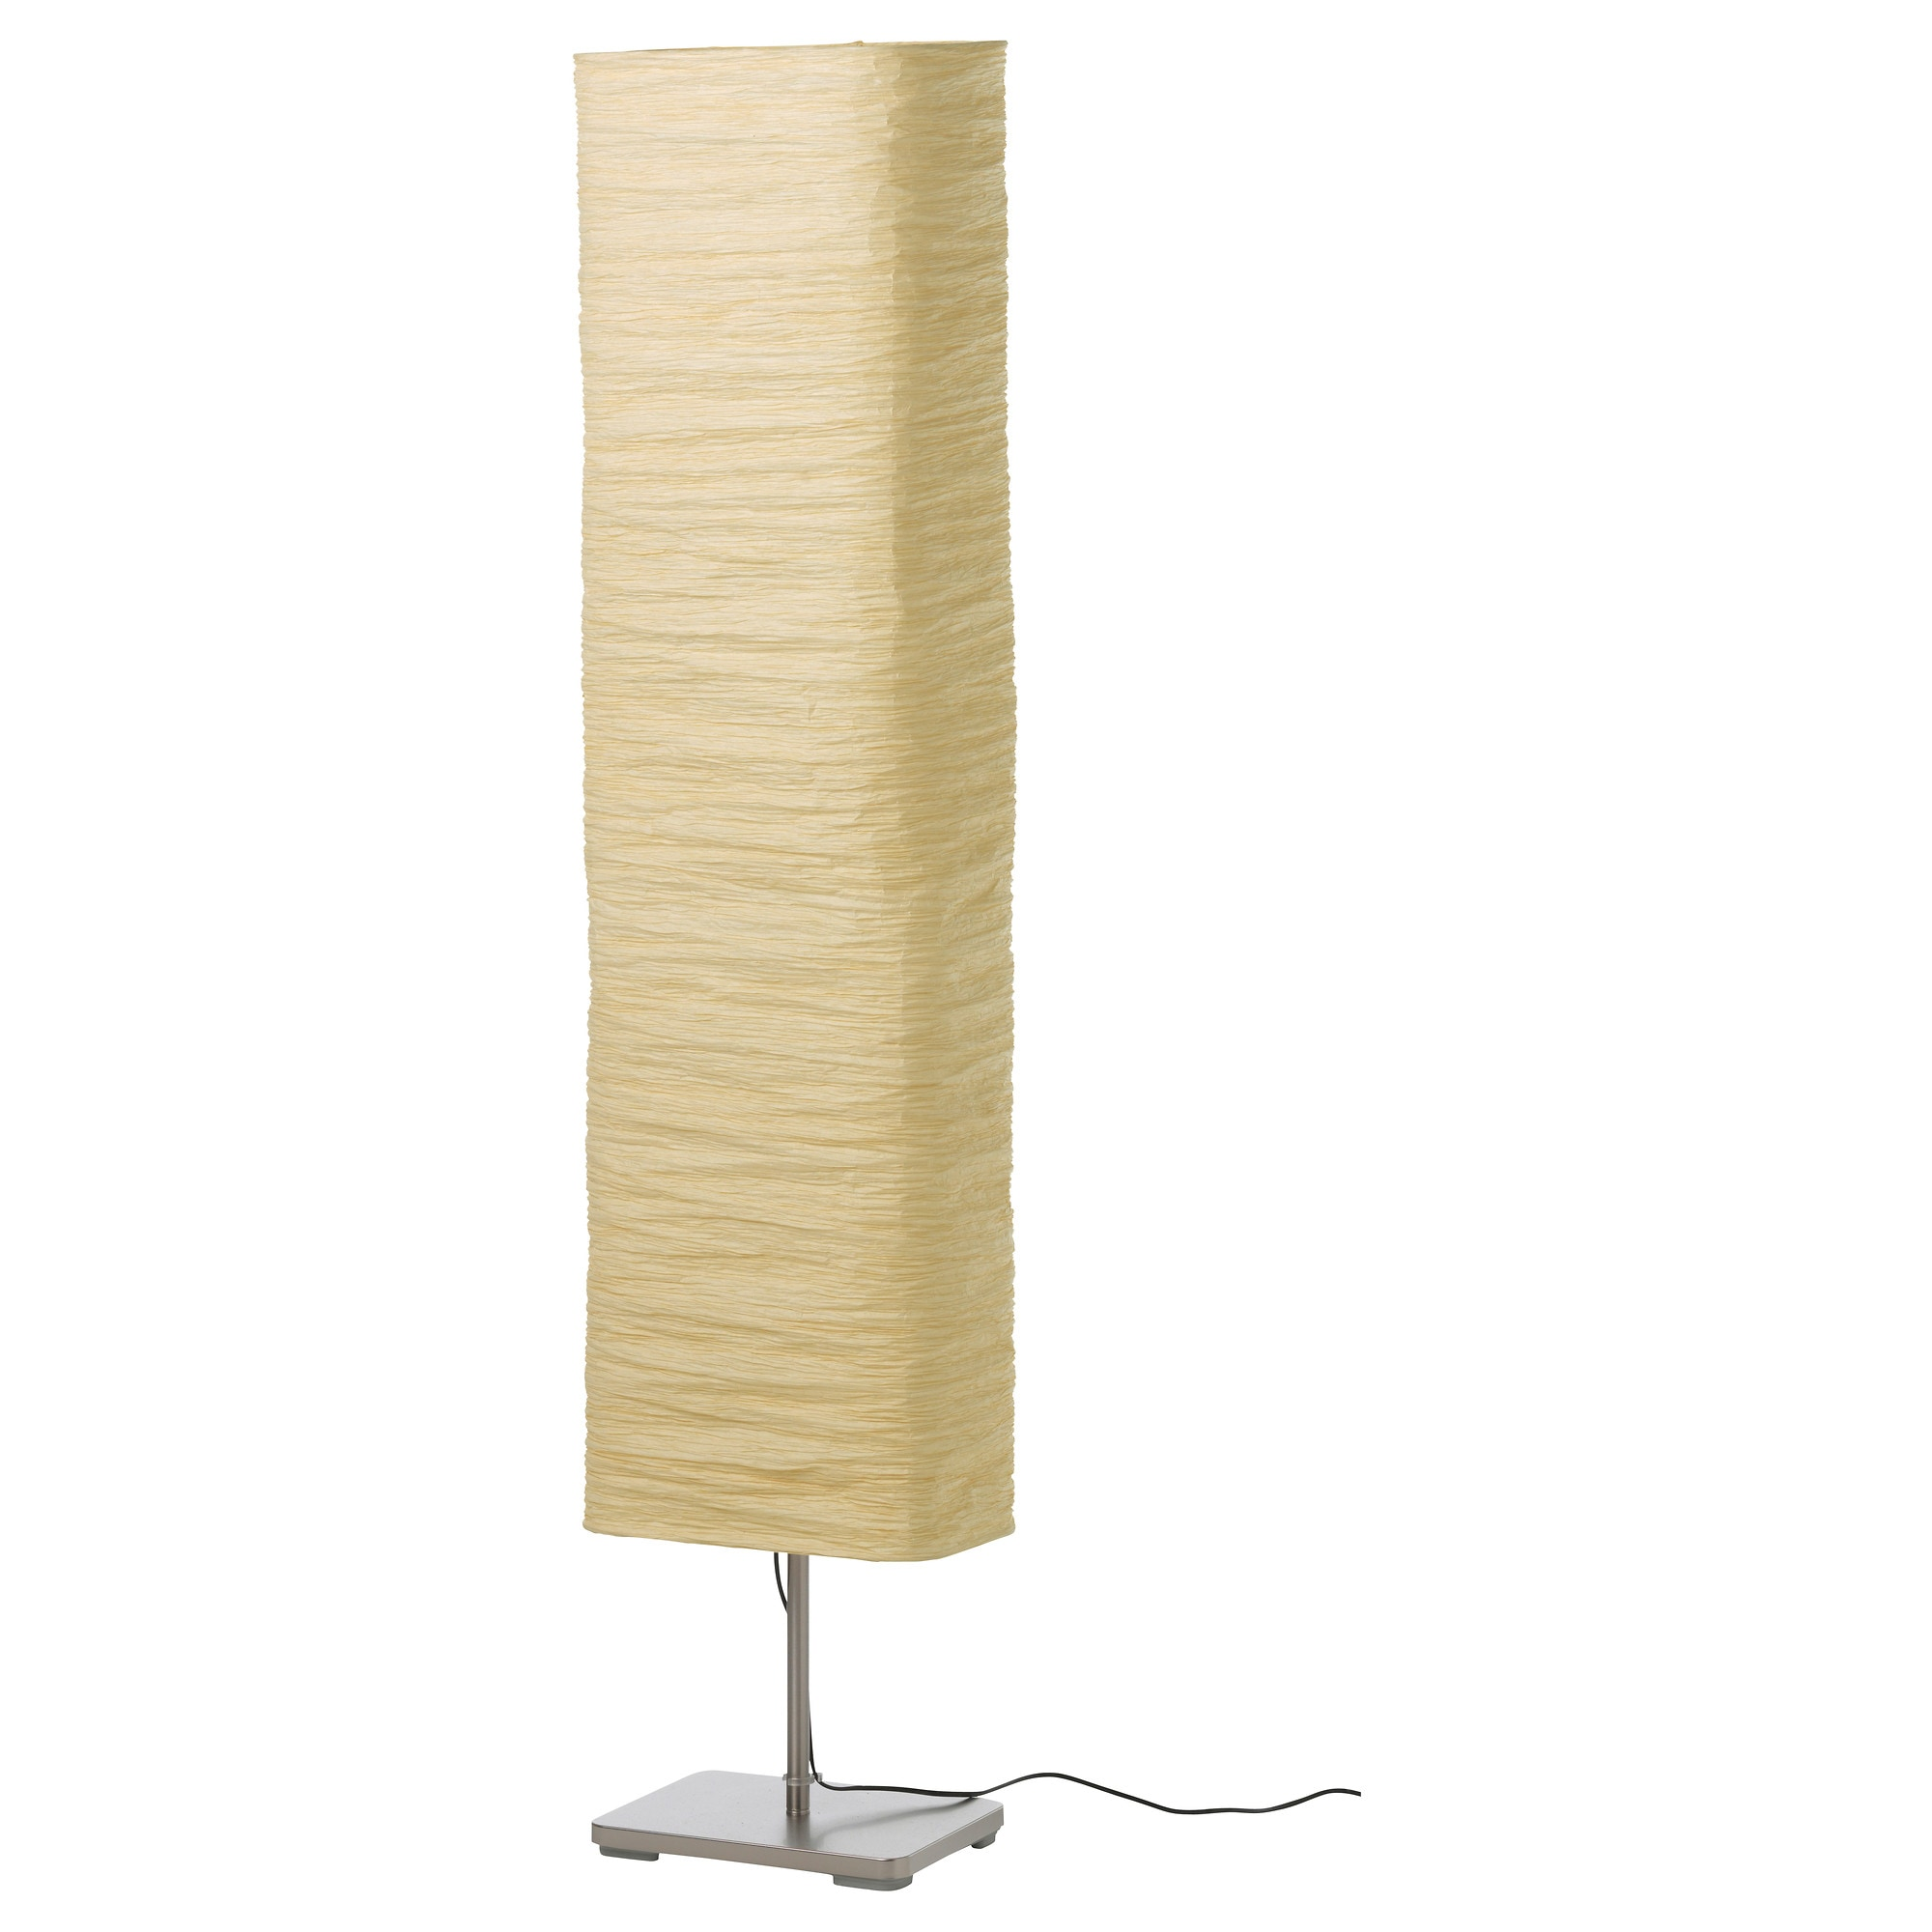 floor lamps  lighting  ikea - magnarp floor lamp natural max  w shade width  cm height